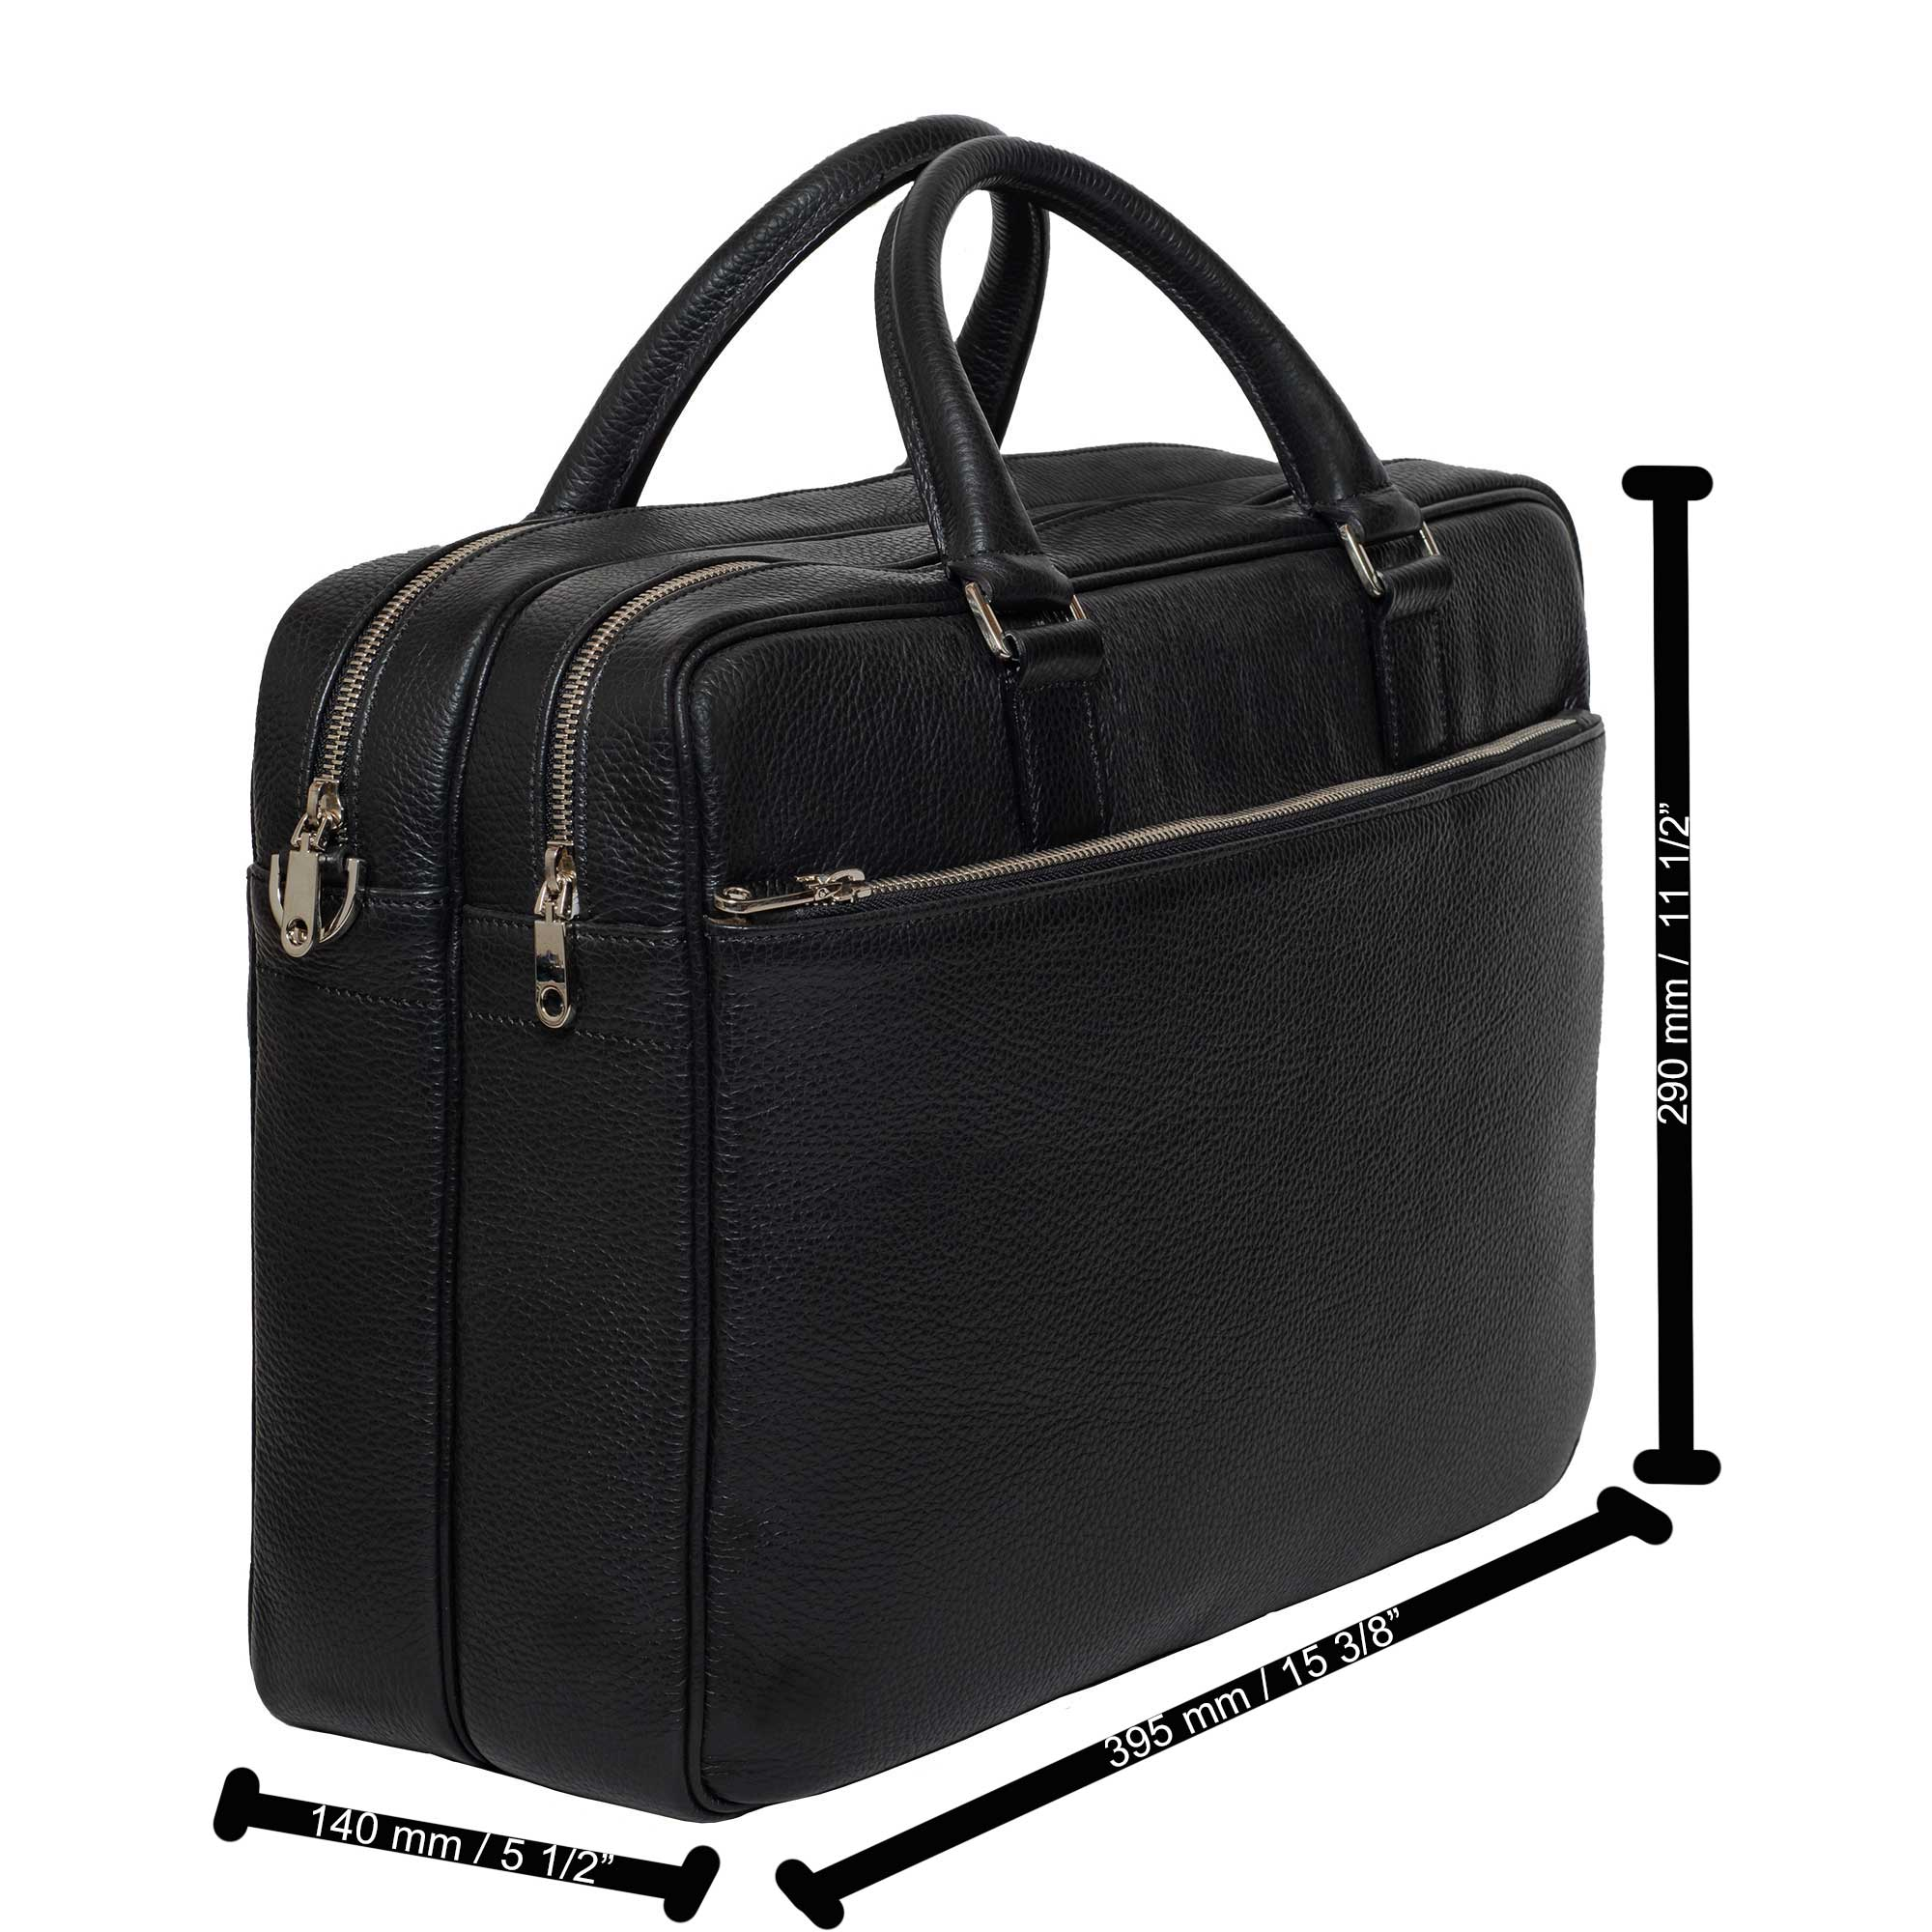 DiLoro Italian Leather Briefcases for Men | Made in Italy - Dimensions